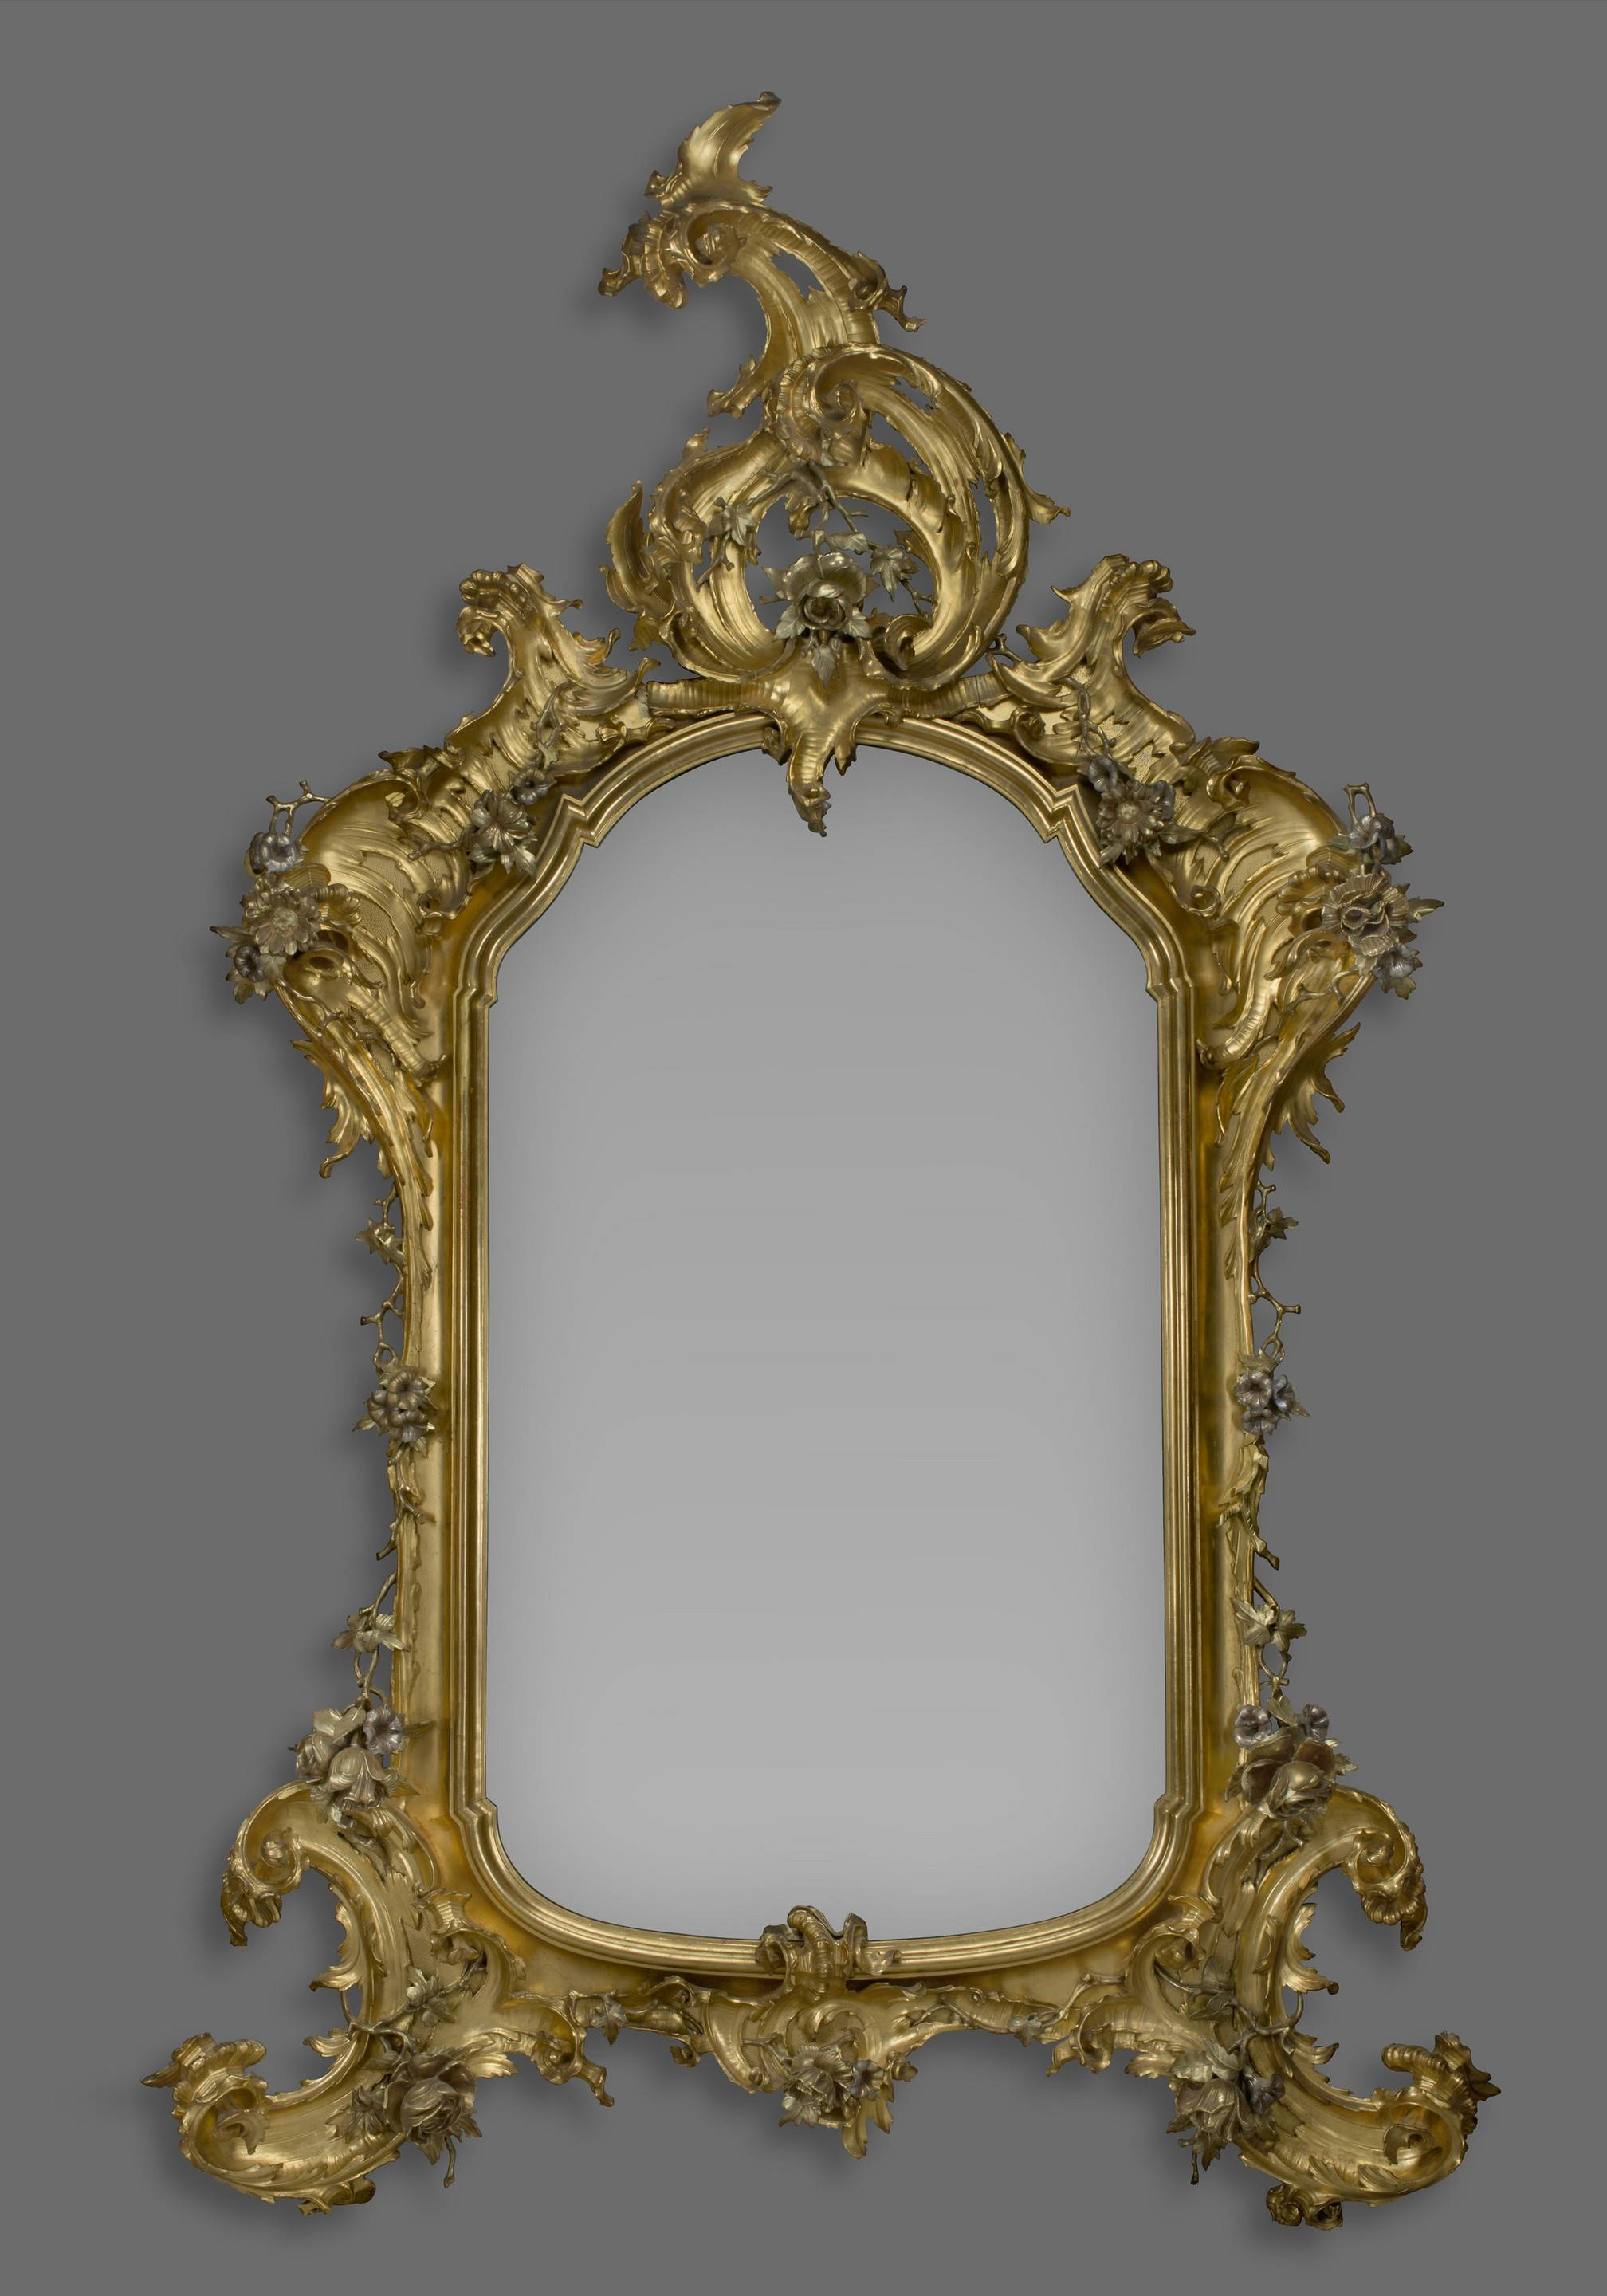 Antique Silver Mirrors - The Uk's Premier Antiques Portal - Online regarding Old Style Mirrors (Image 5 of 25)